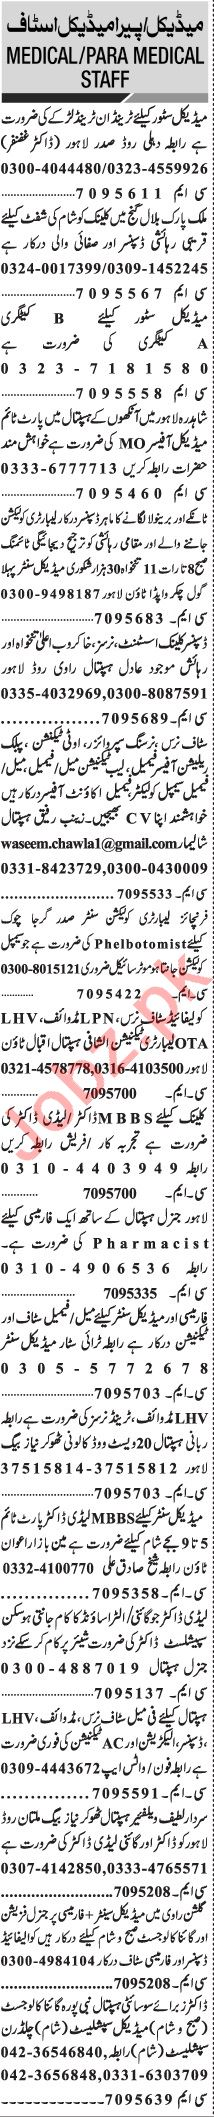 Jang Sunday Classified Ads 28 Feb 2021 for Medical Staff